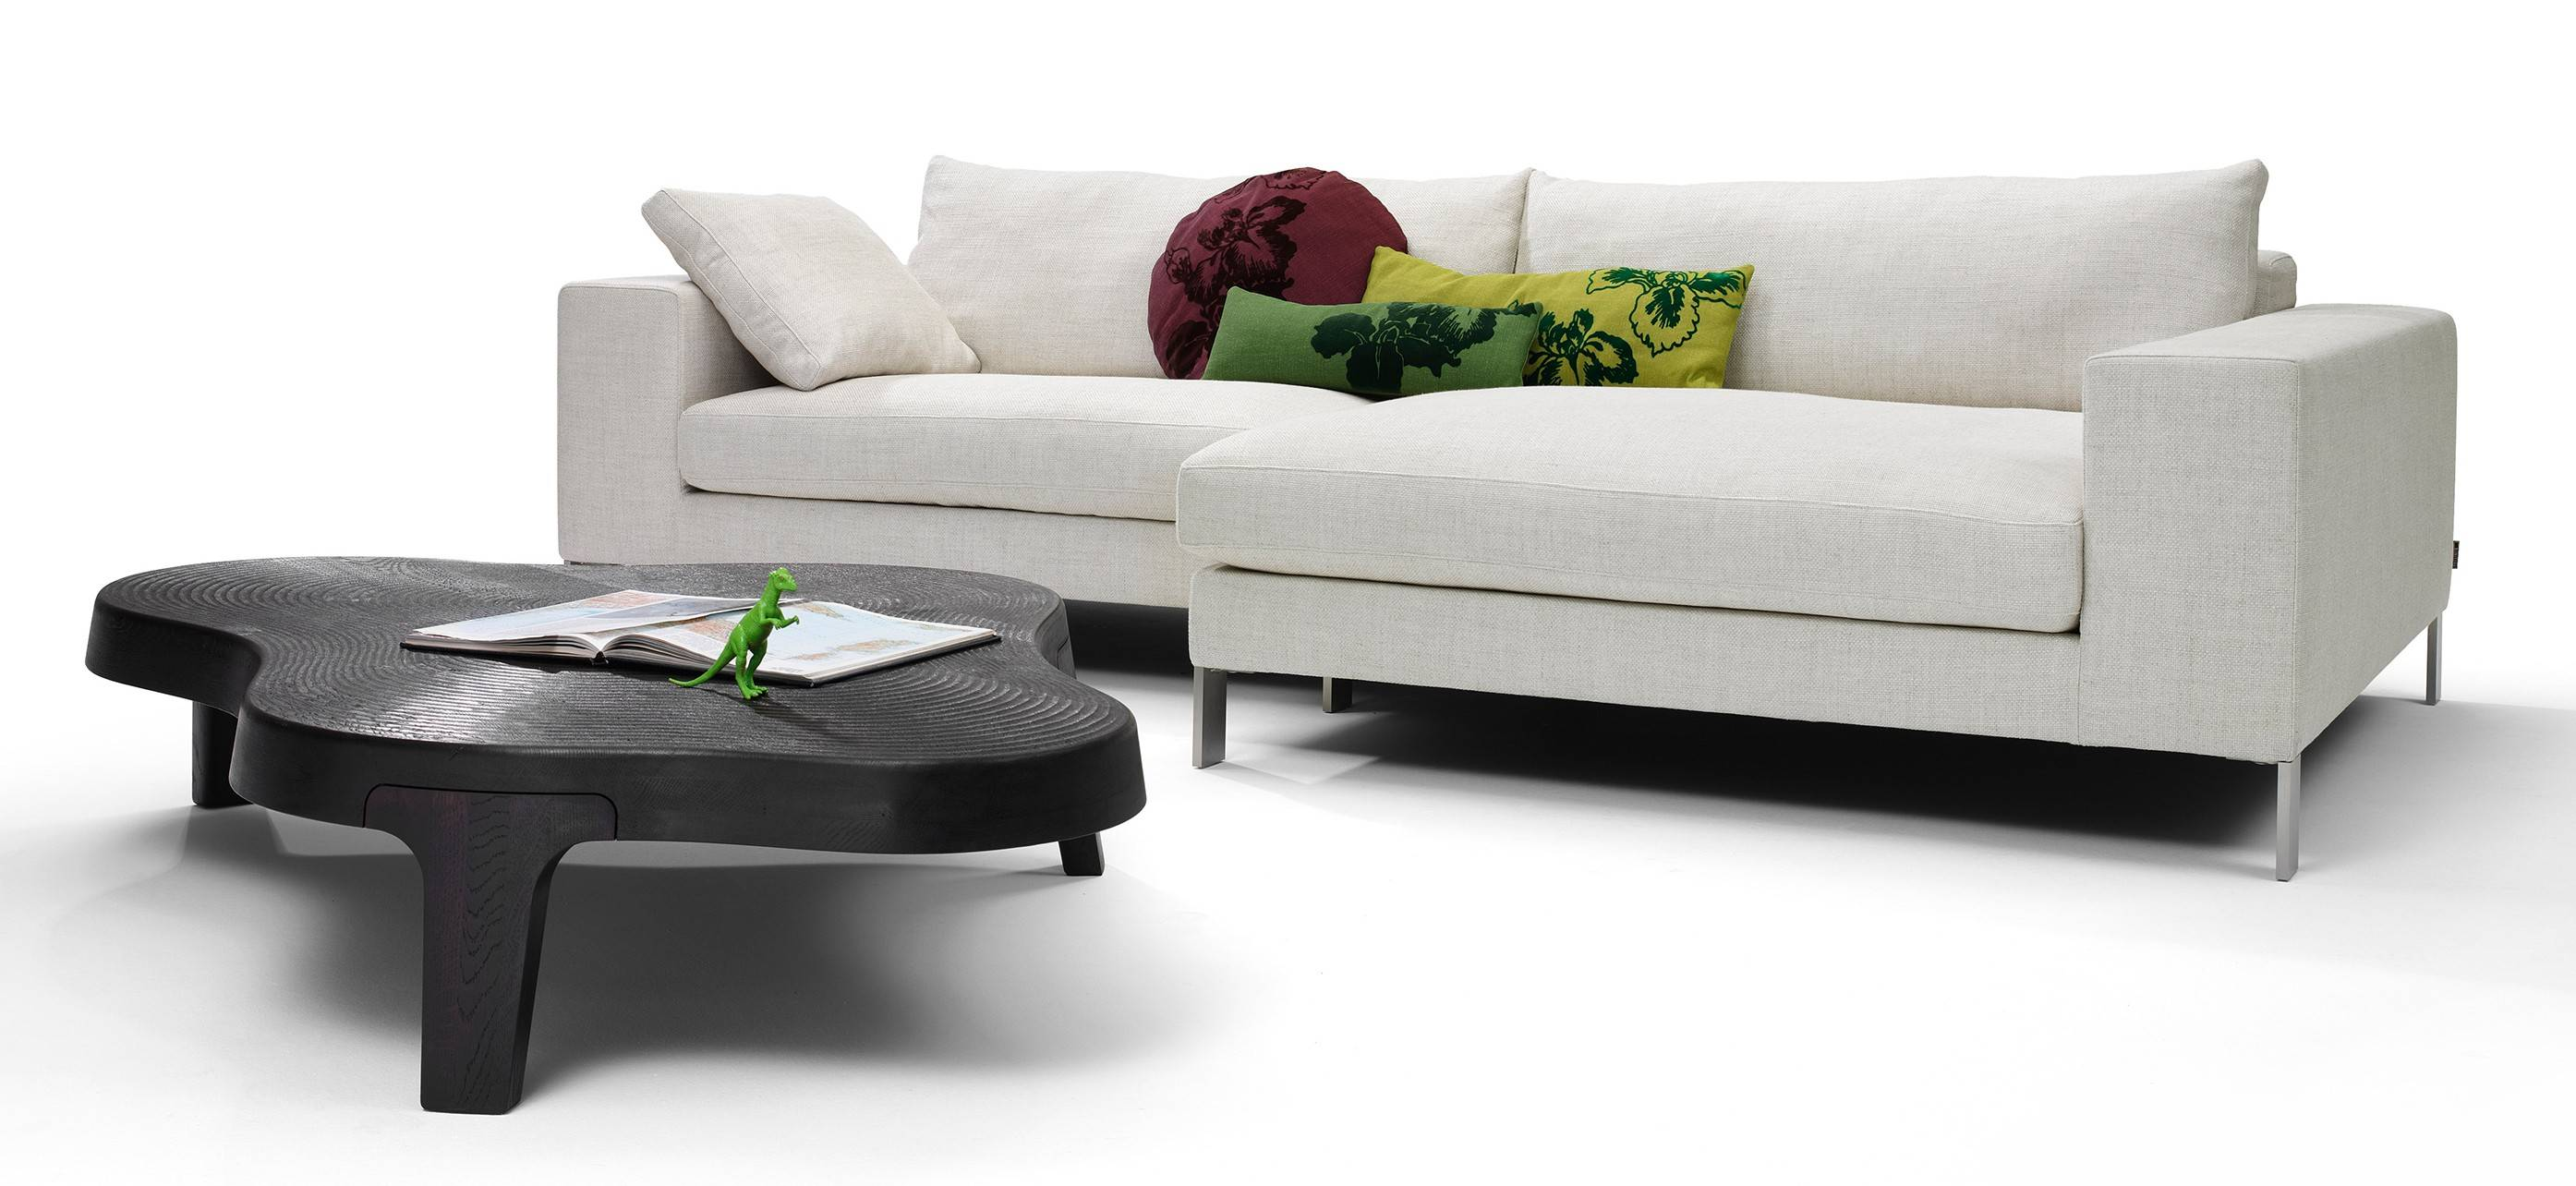 The Plaza small sectional sofa ($10,379) can be found on Hive Modern.